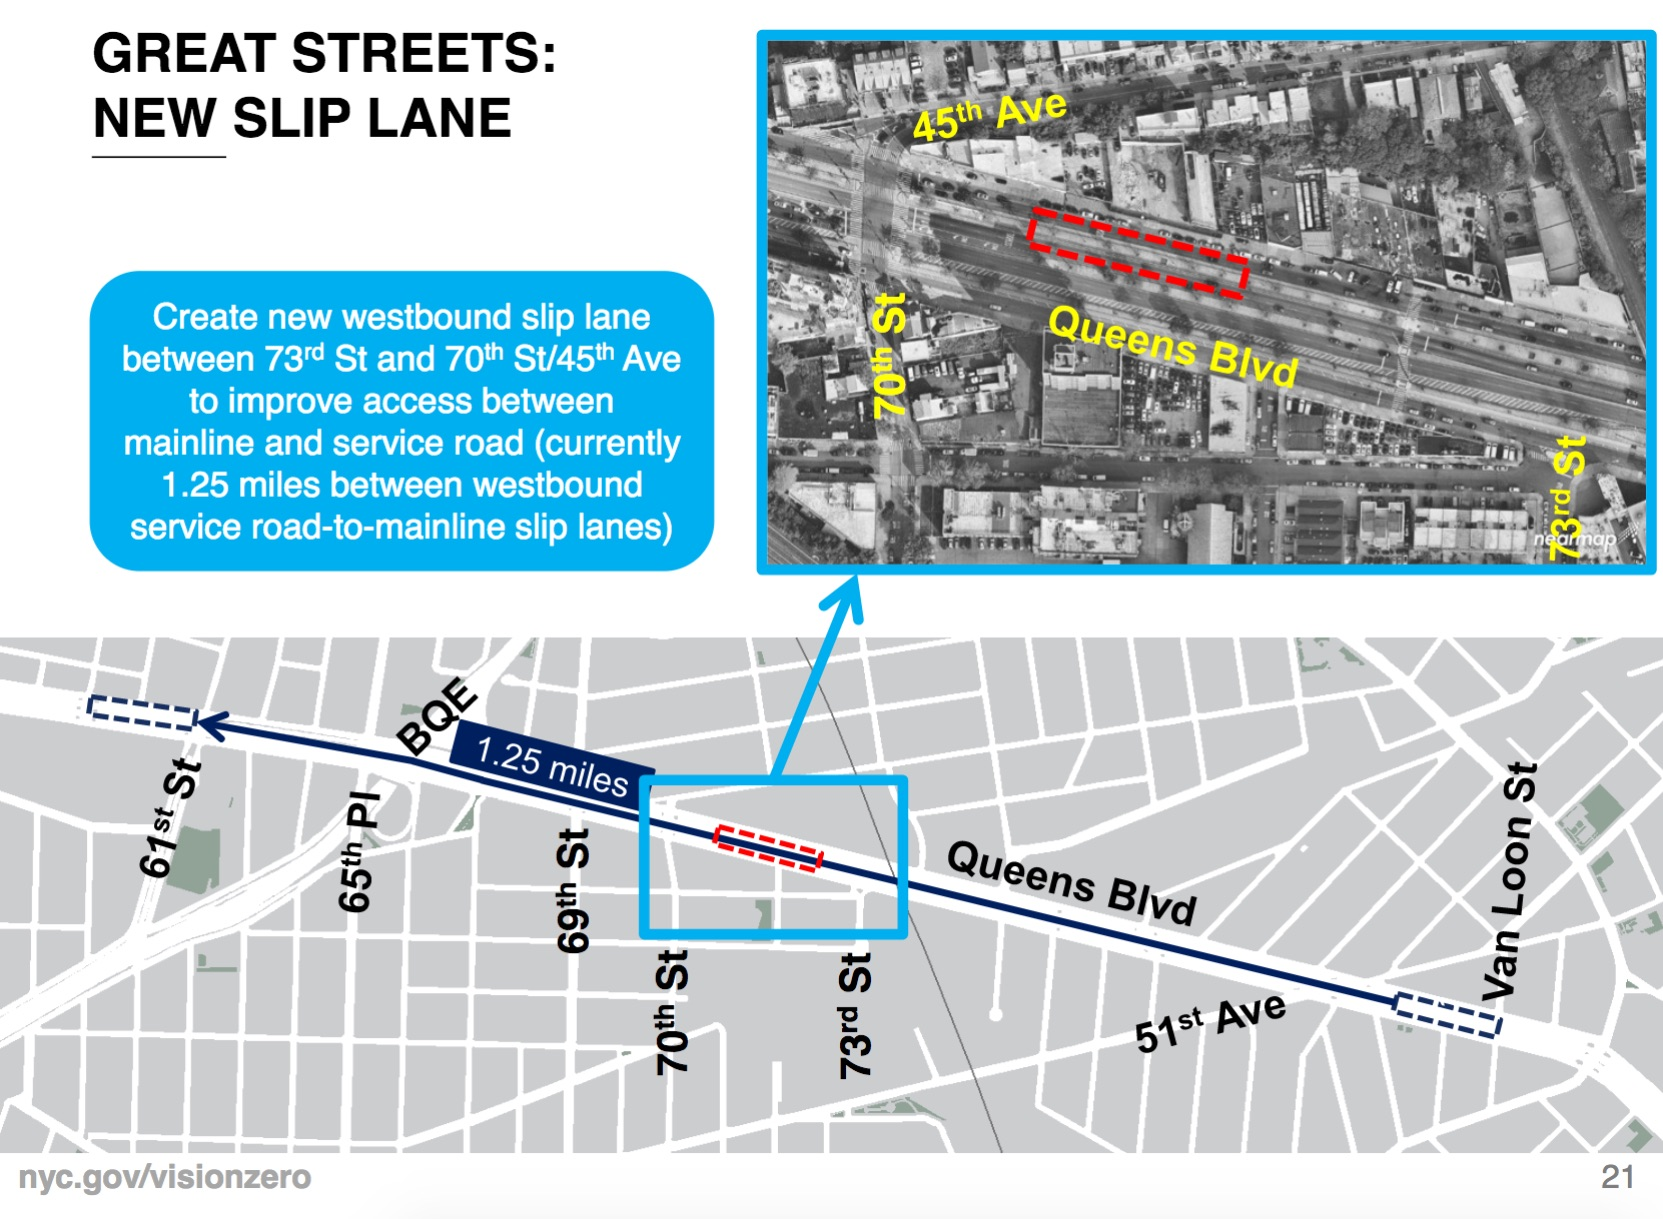 Queens Boulevard Will See Linear Park, Q60 Bus to Run on ... on q25 bus map, q84 bus map, q104 bus map, q112 bus map, q44 bus map, q30 bus map, q66 bus map, q17 bus map, m60 bus map, q83 bus map, q20 bus map, q35 bus map, q102 bus map, new york bus route map, q20a bus map, q24 bus map, q76 bus map, q65 bus map, b82 bus map, q55 bus map,